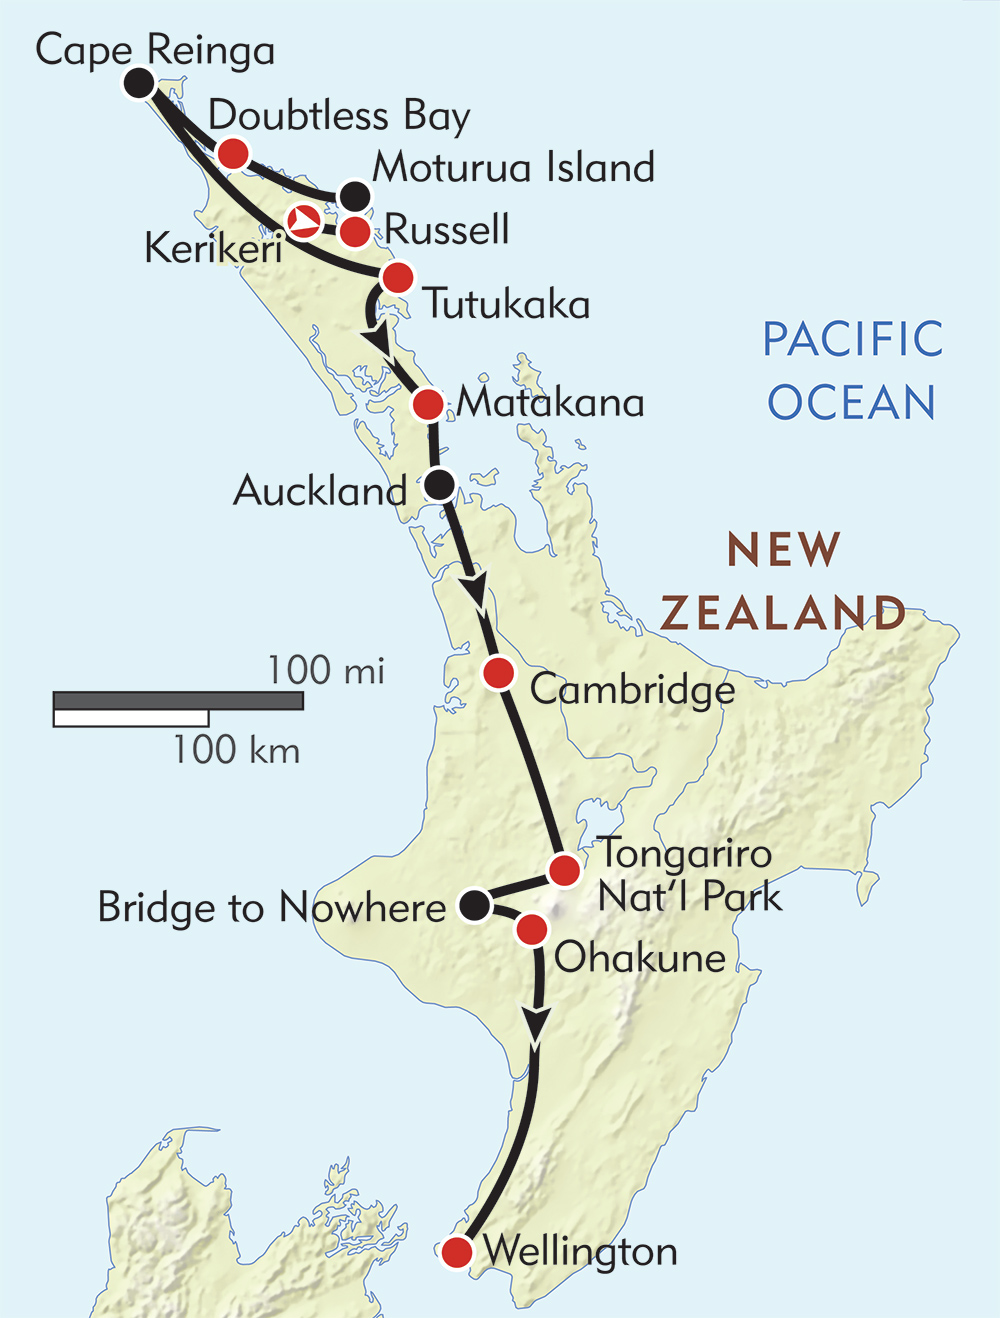 Where Is Wellington New Zealand On The Map.New Zealand Hiking Tour North Island Te Araroa Wilderness Travel